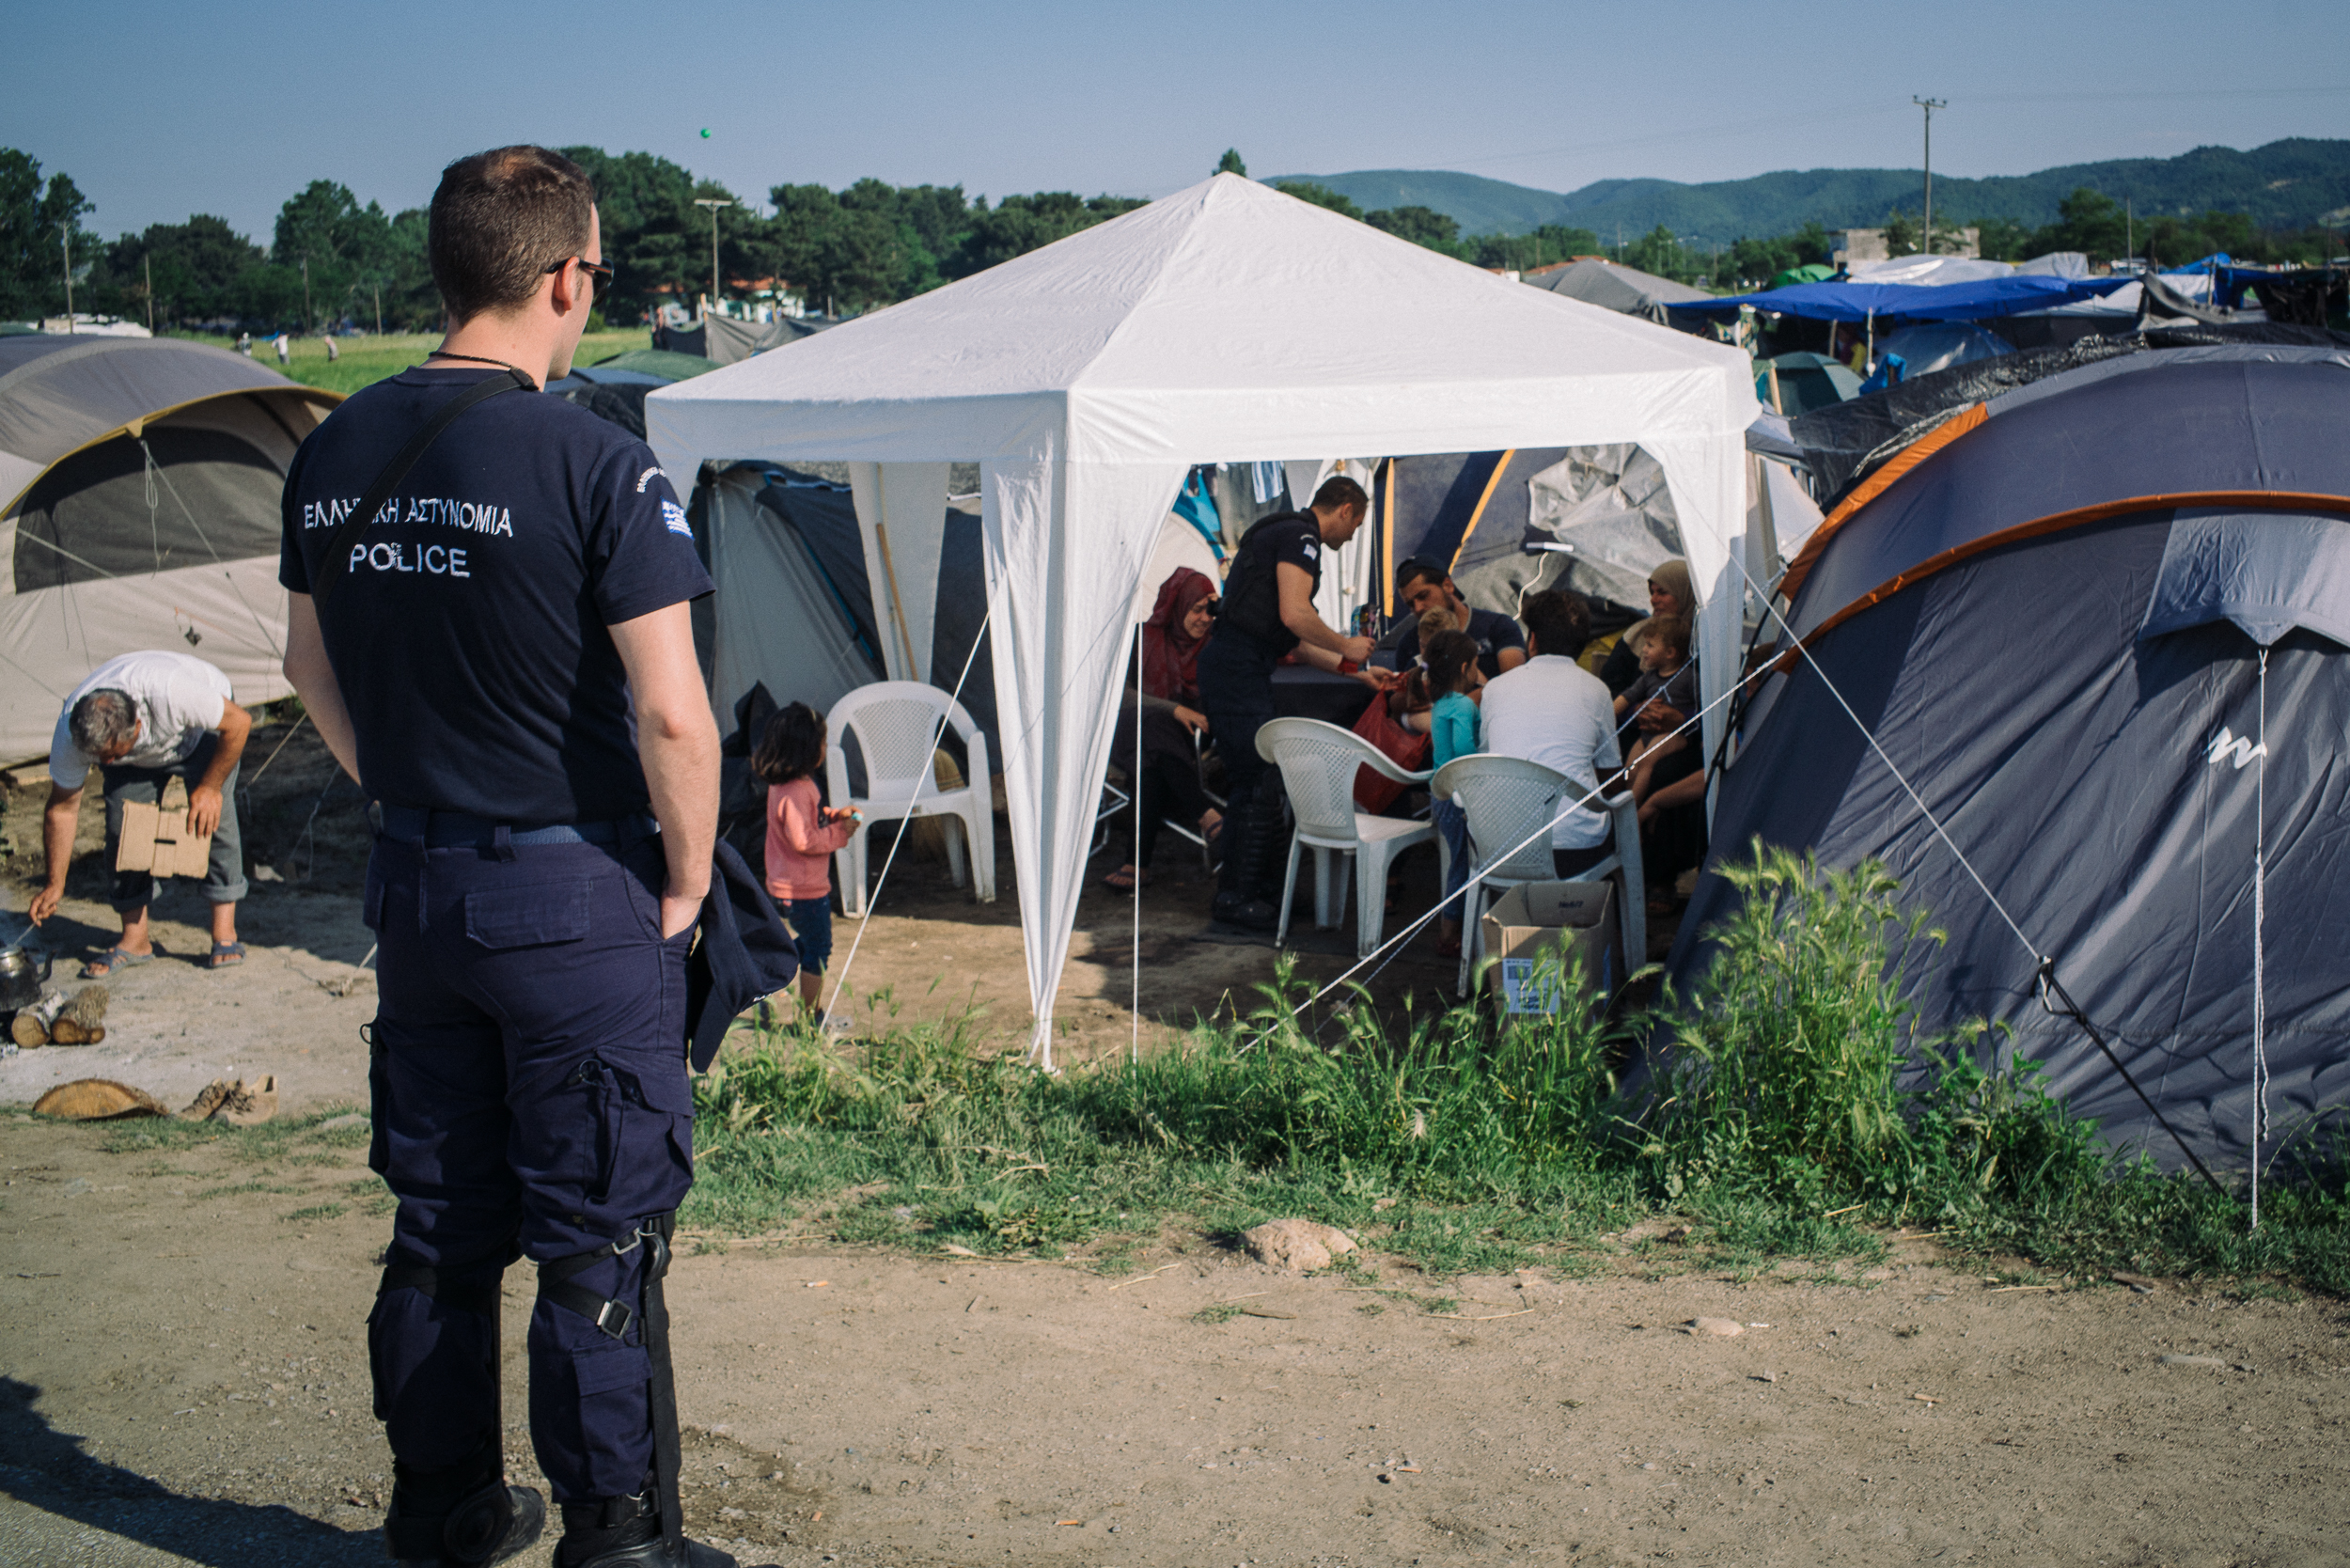 Two police officers bought sweet treats to give out to the children as they went around the camp informing the asylum seekers that they will all be relocated to official government camps the next day.